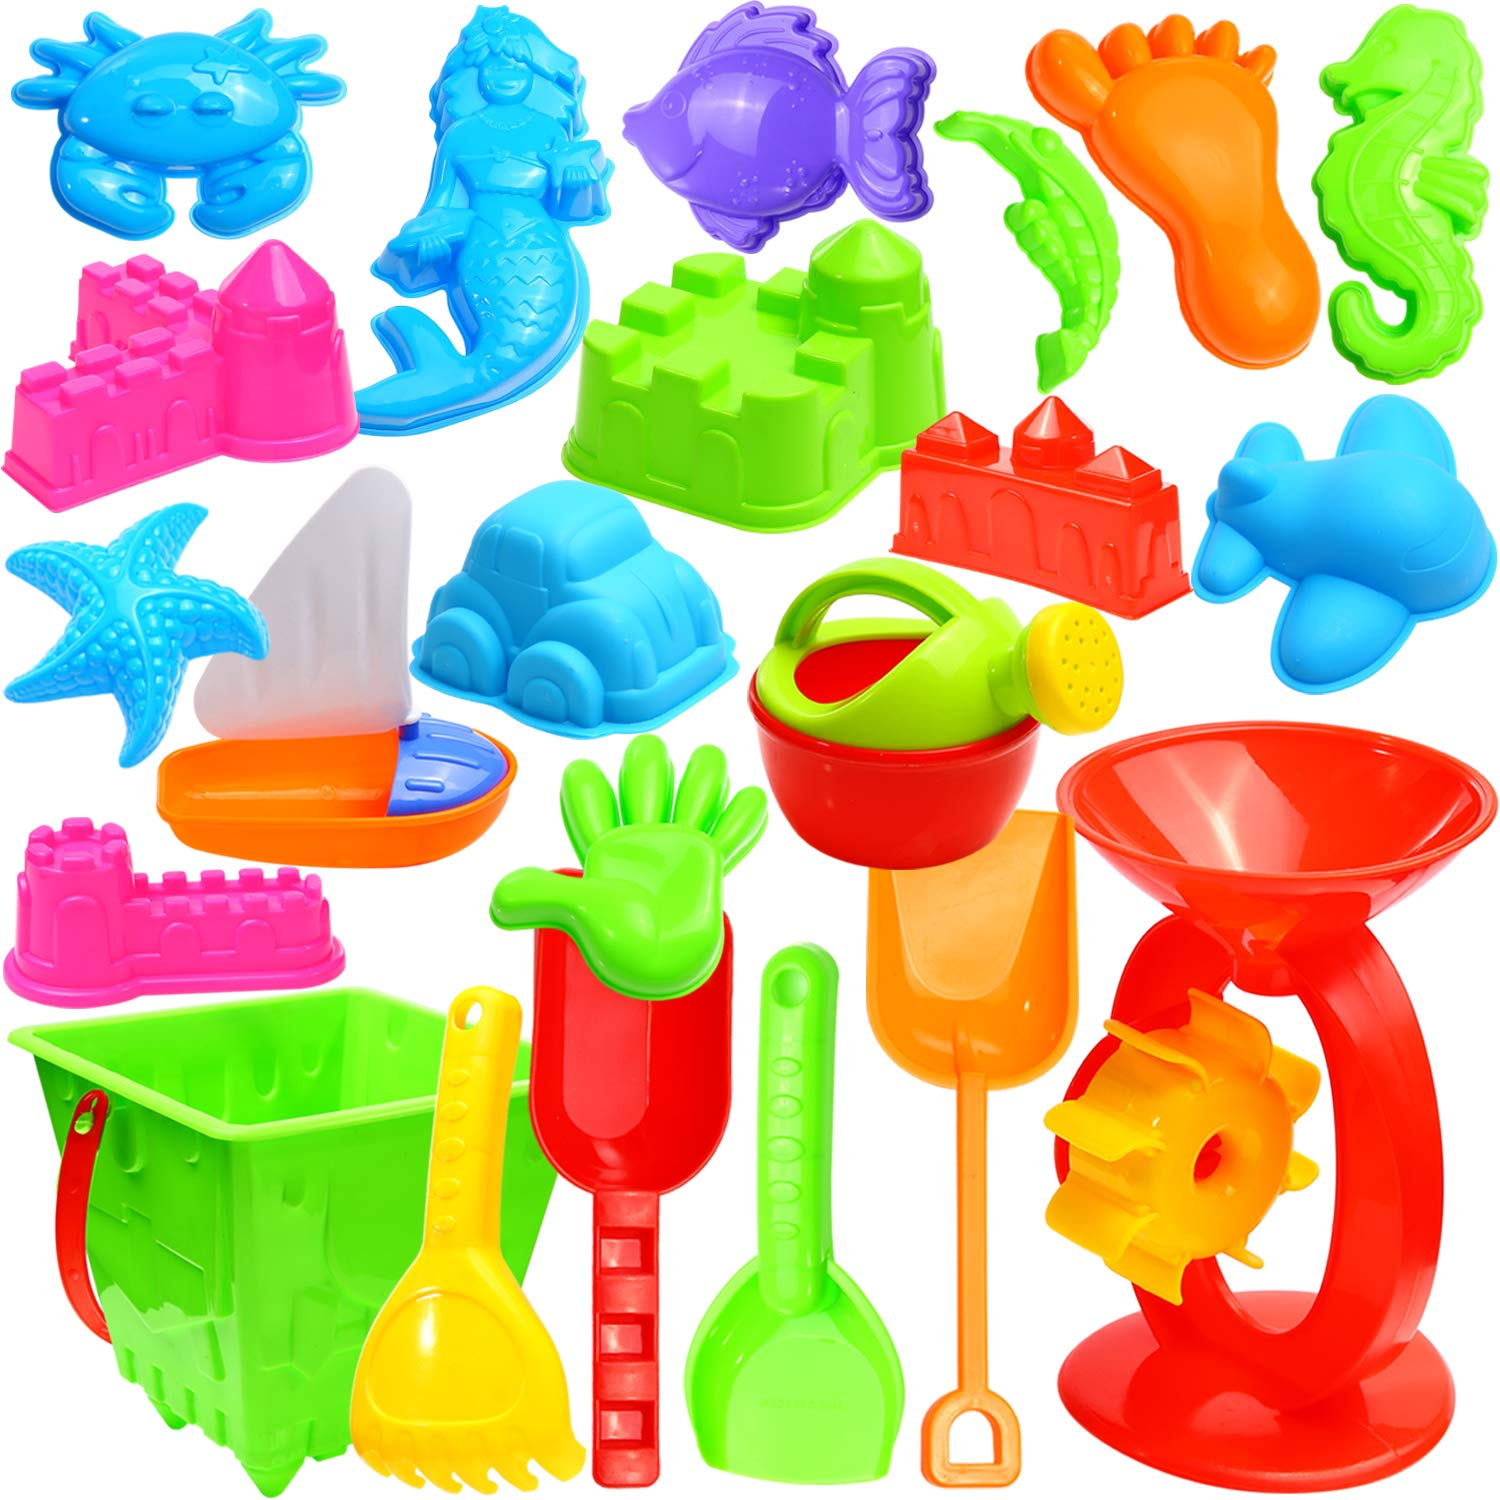 Ohuhu 22 Pcs Beach Sand Toys Set, Beach Toys with Zippered Bag, Include Beach Molds, Sand Molds, Bucket, Beach Shovel Tool Kit, Sand Water Wheel, Animals, Castle, for Toddlers, Kids, Children Outdoor by Ohuhu